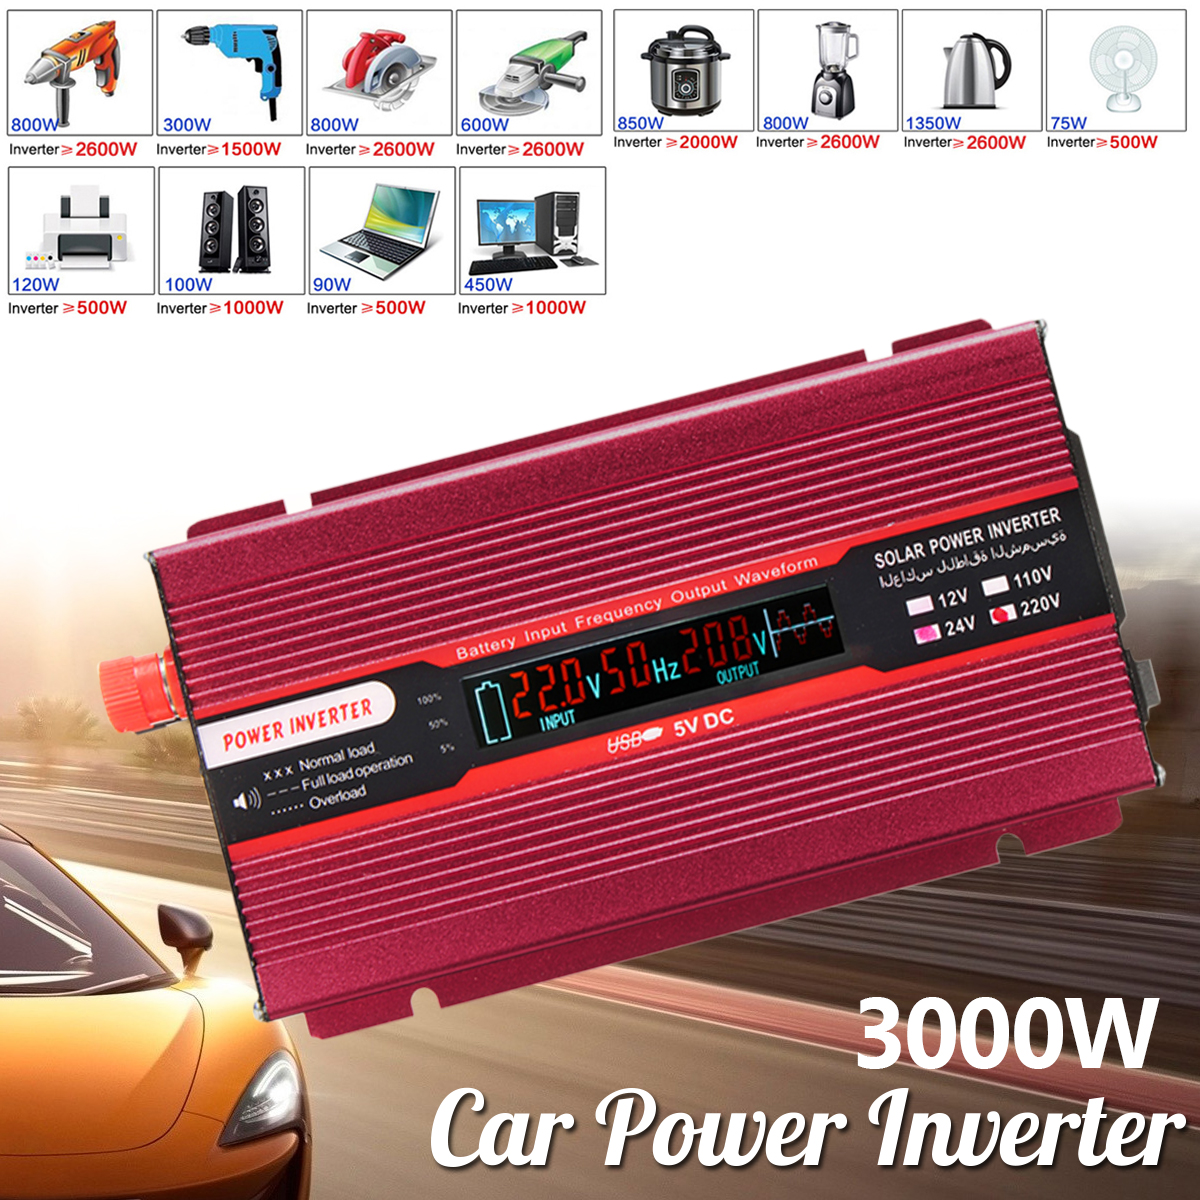 Car Power Inverter PEAK 3000W 12/24V To AC 220/110V USB Modified Sine Wave Converter Low Noise Voltage Transformer USB Aluminum 12 24v to ac 220 110v car power inverter converter peak 10000w usb modified sine wave voltage transformer universal intelligent